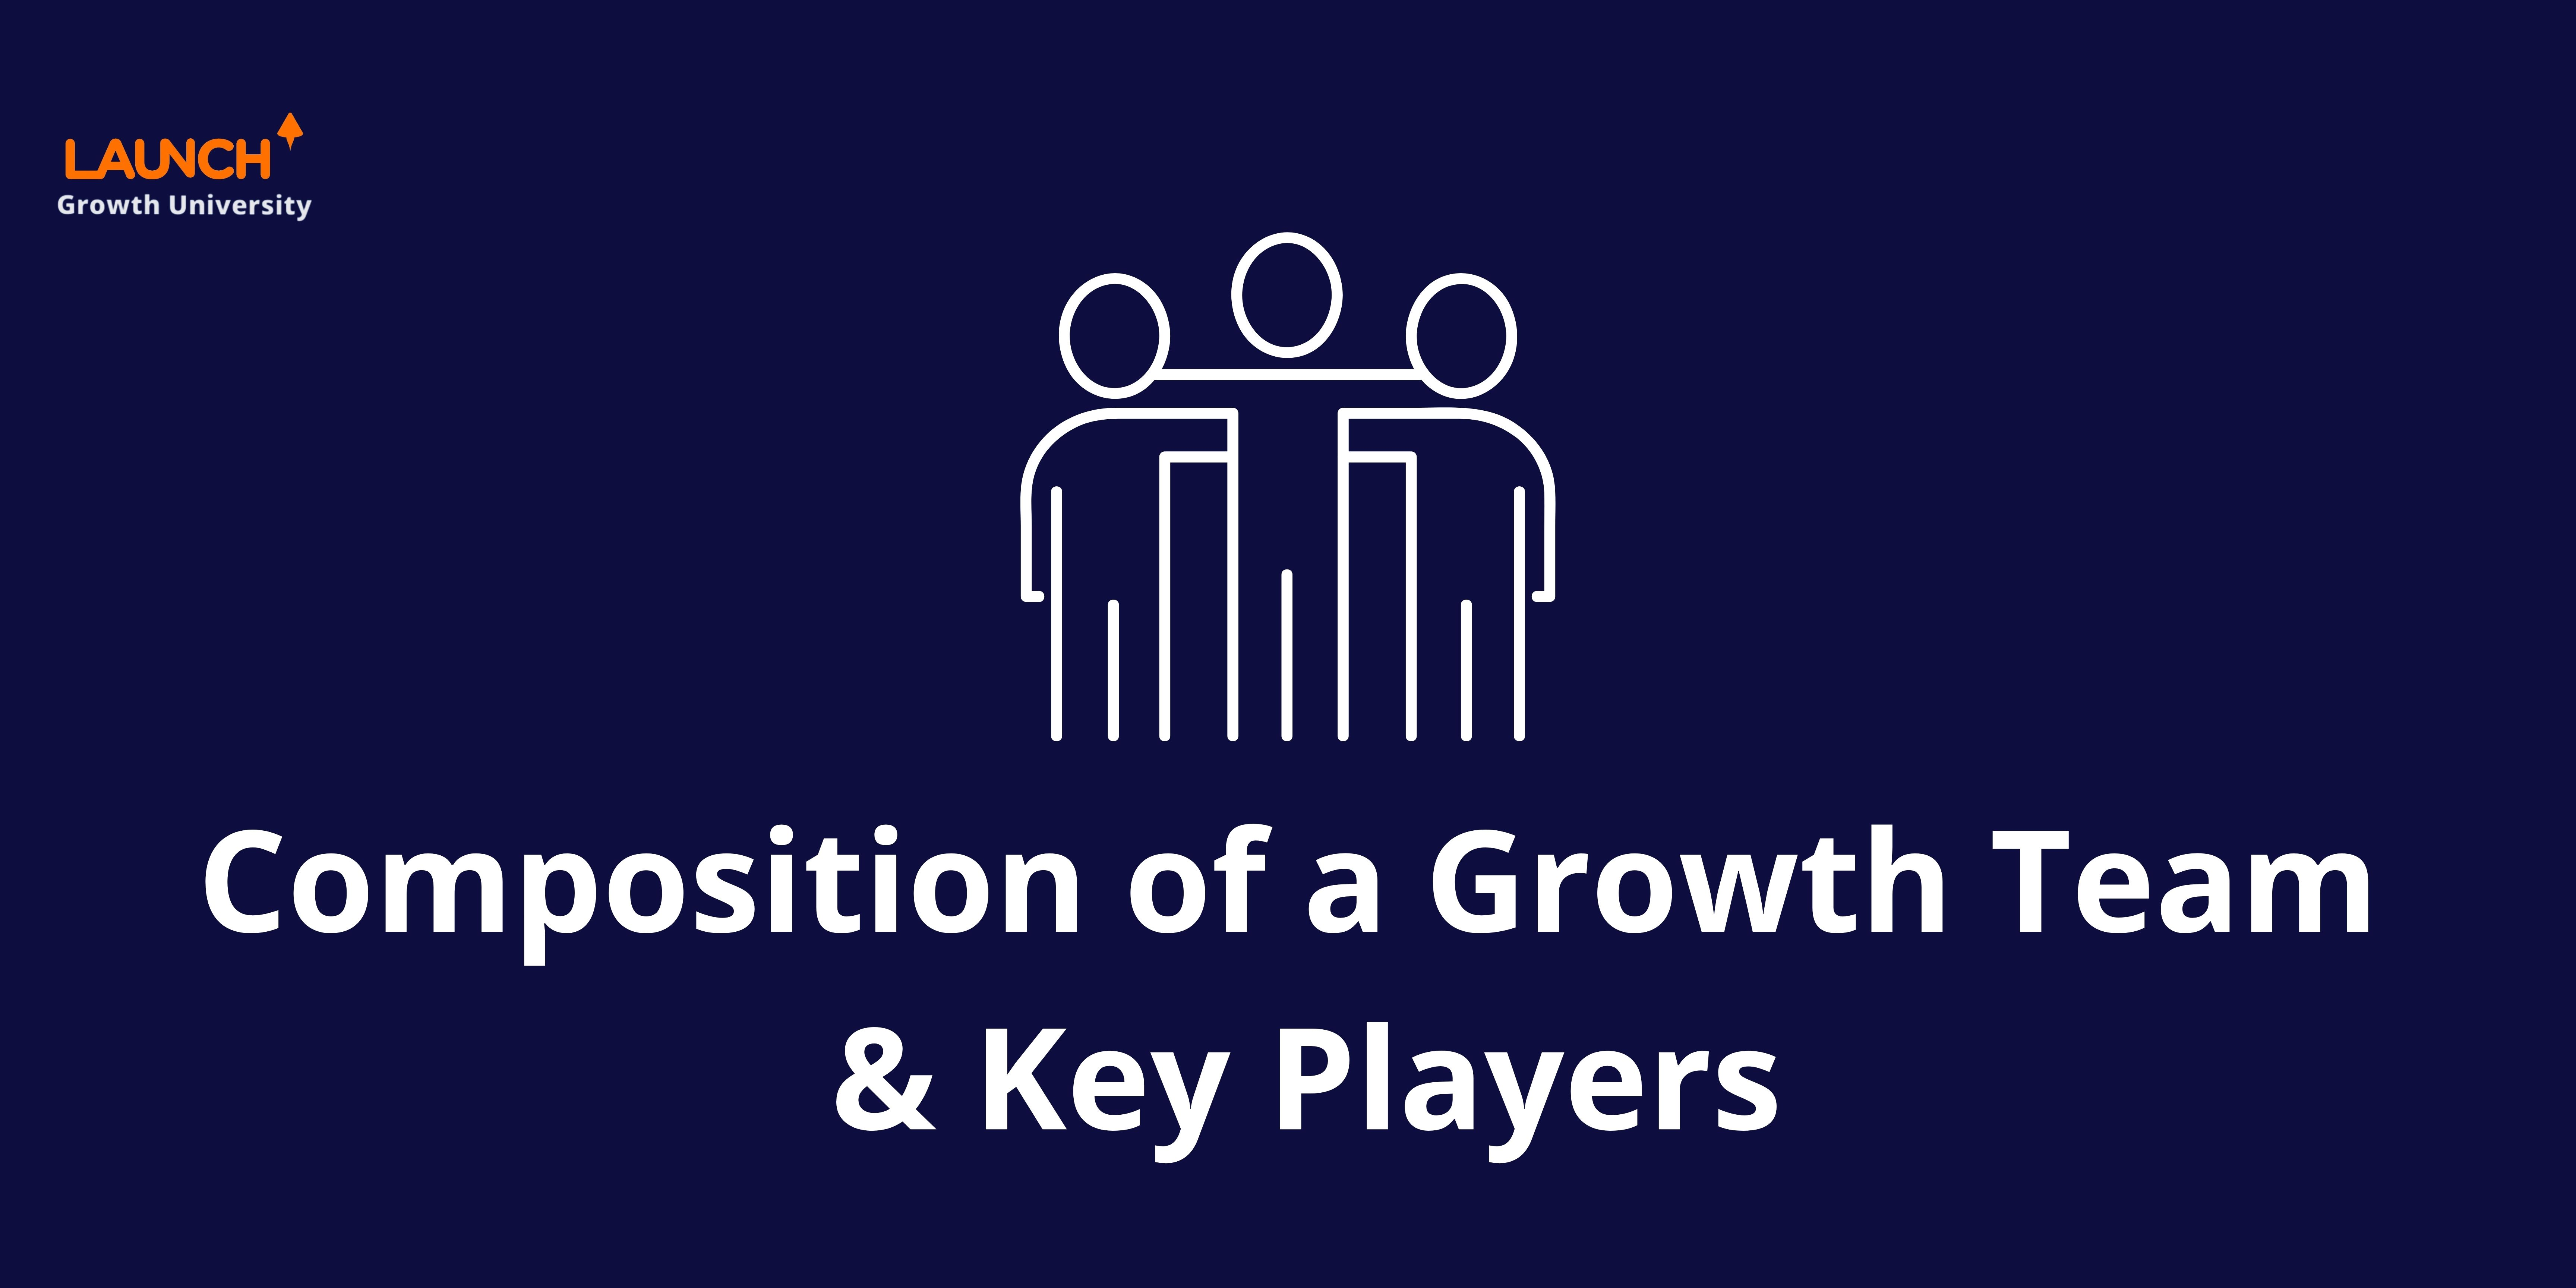 Composition of a Growth Team & Key Players